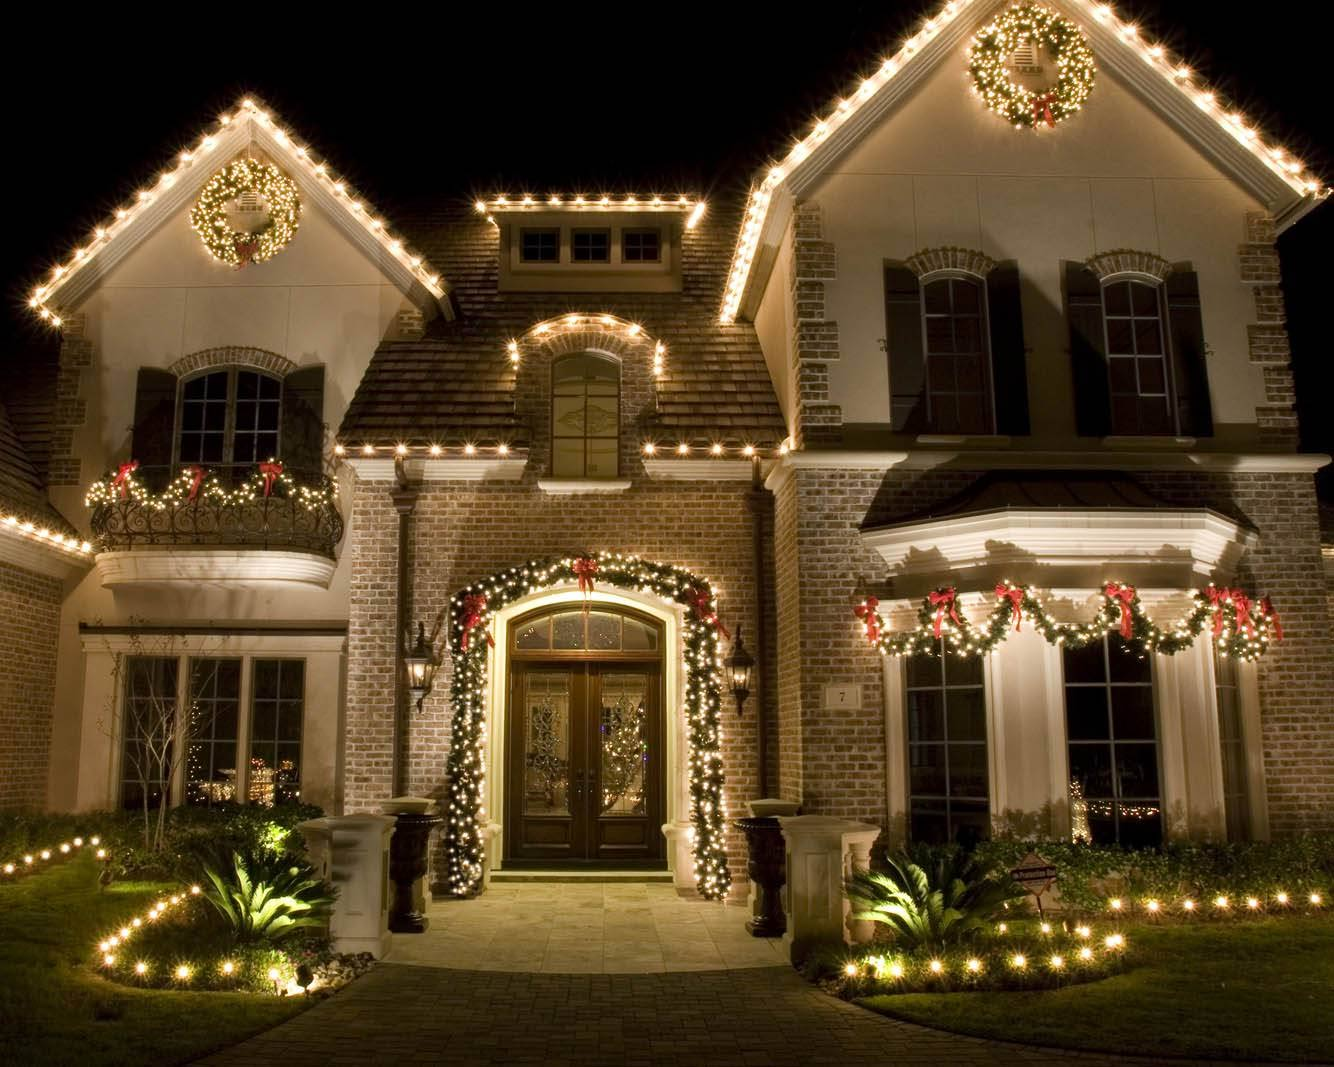 Christmas lights on a home in New Braunfels, TX